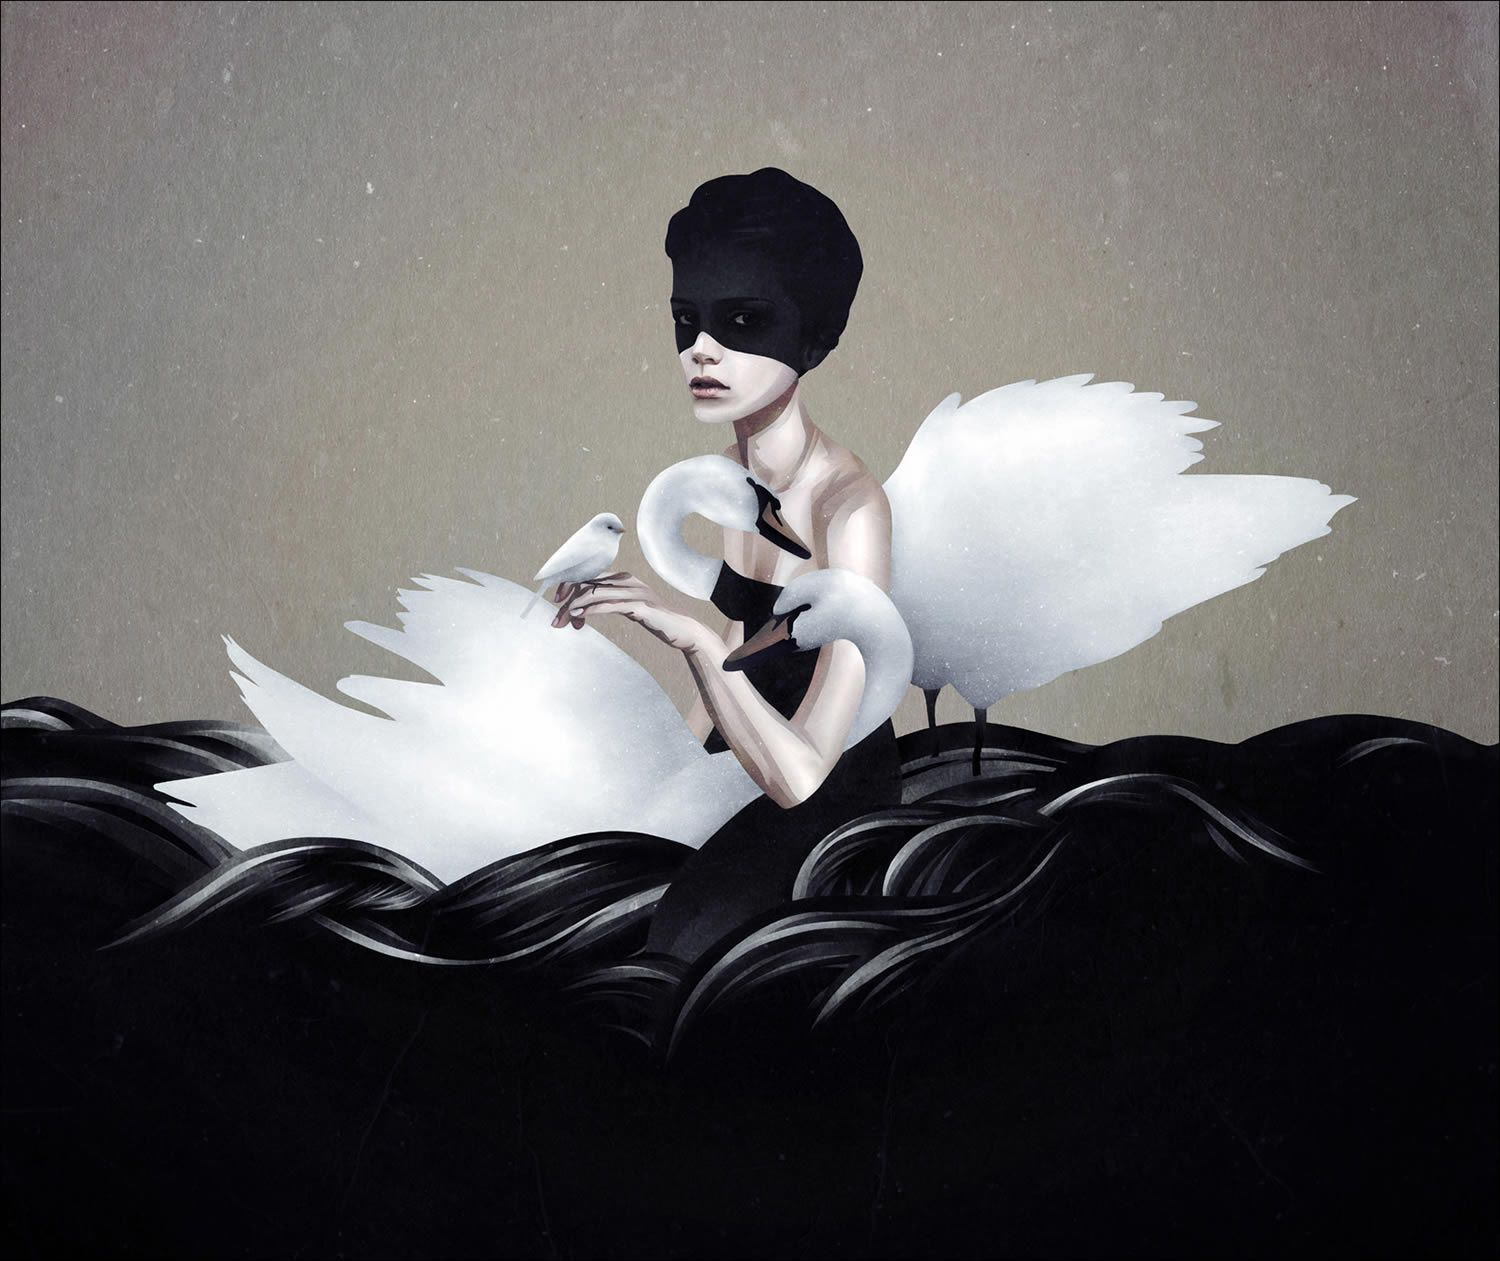 swans with girl, illustration by ruben ireland